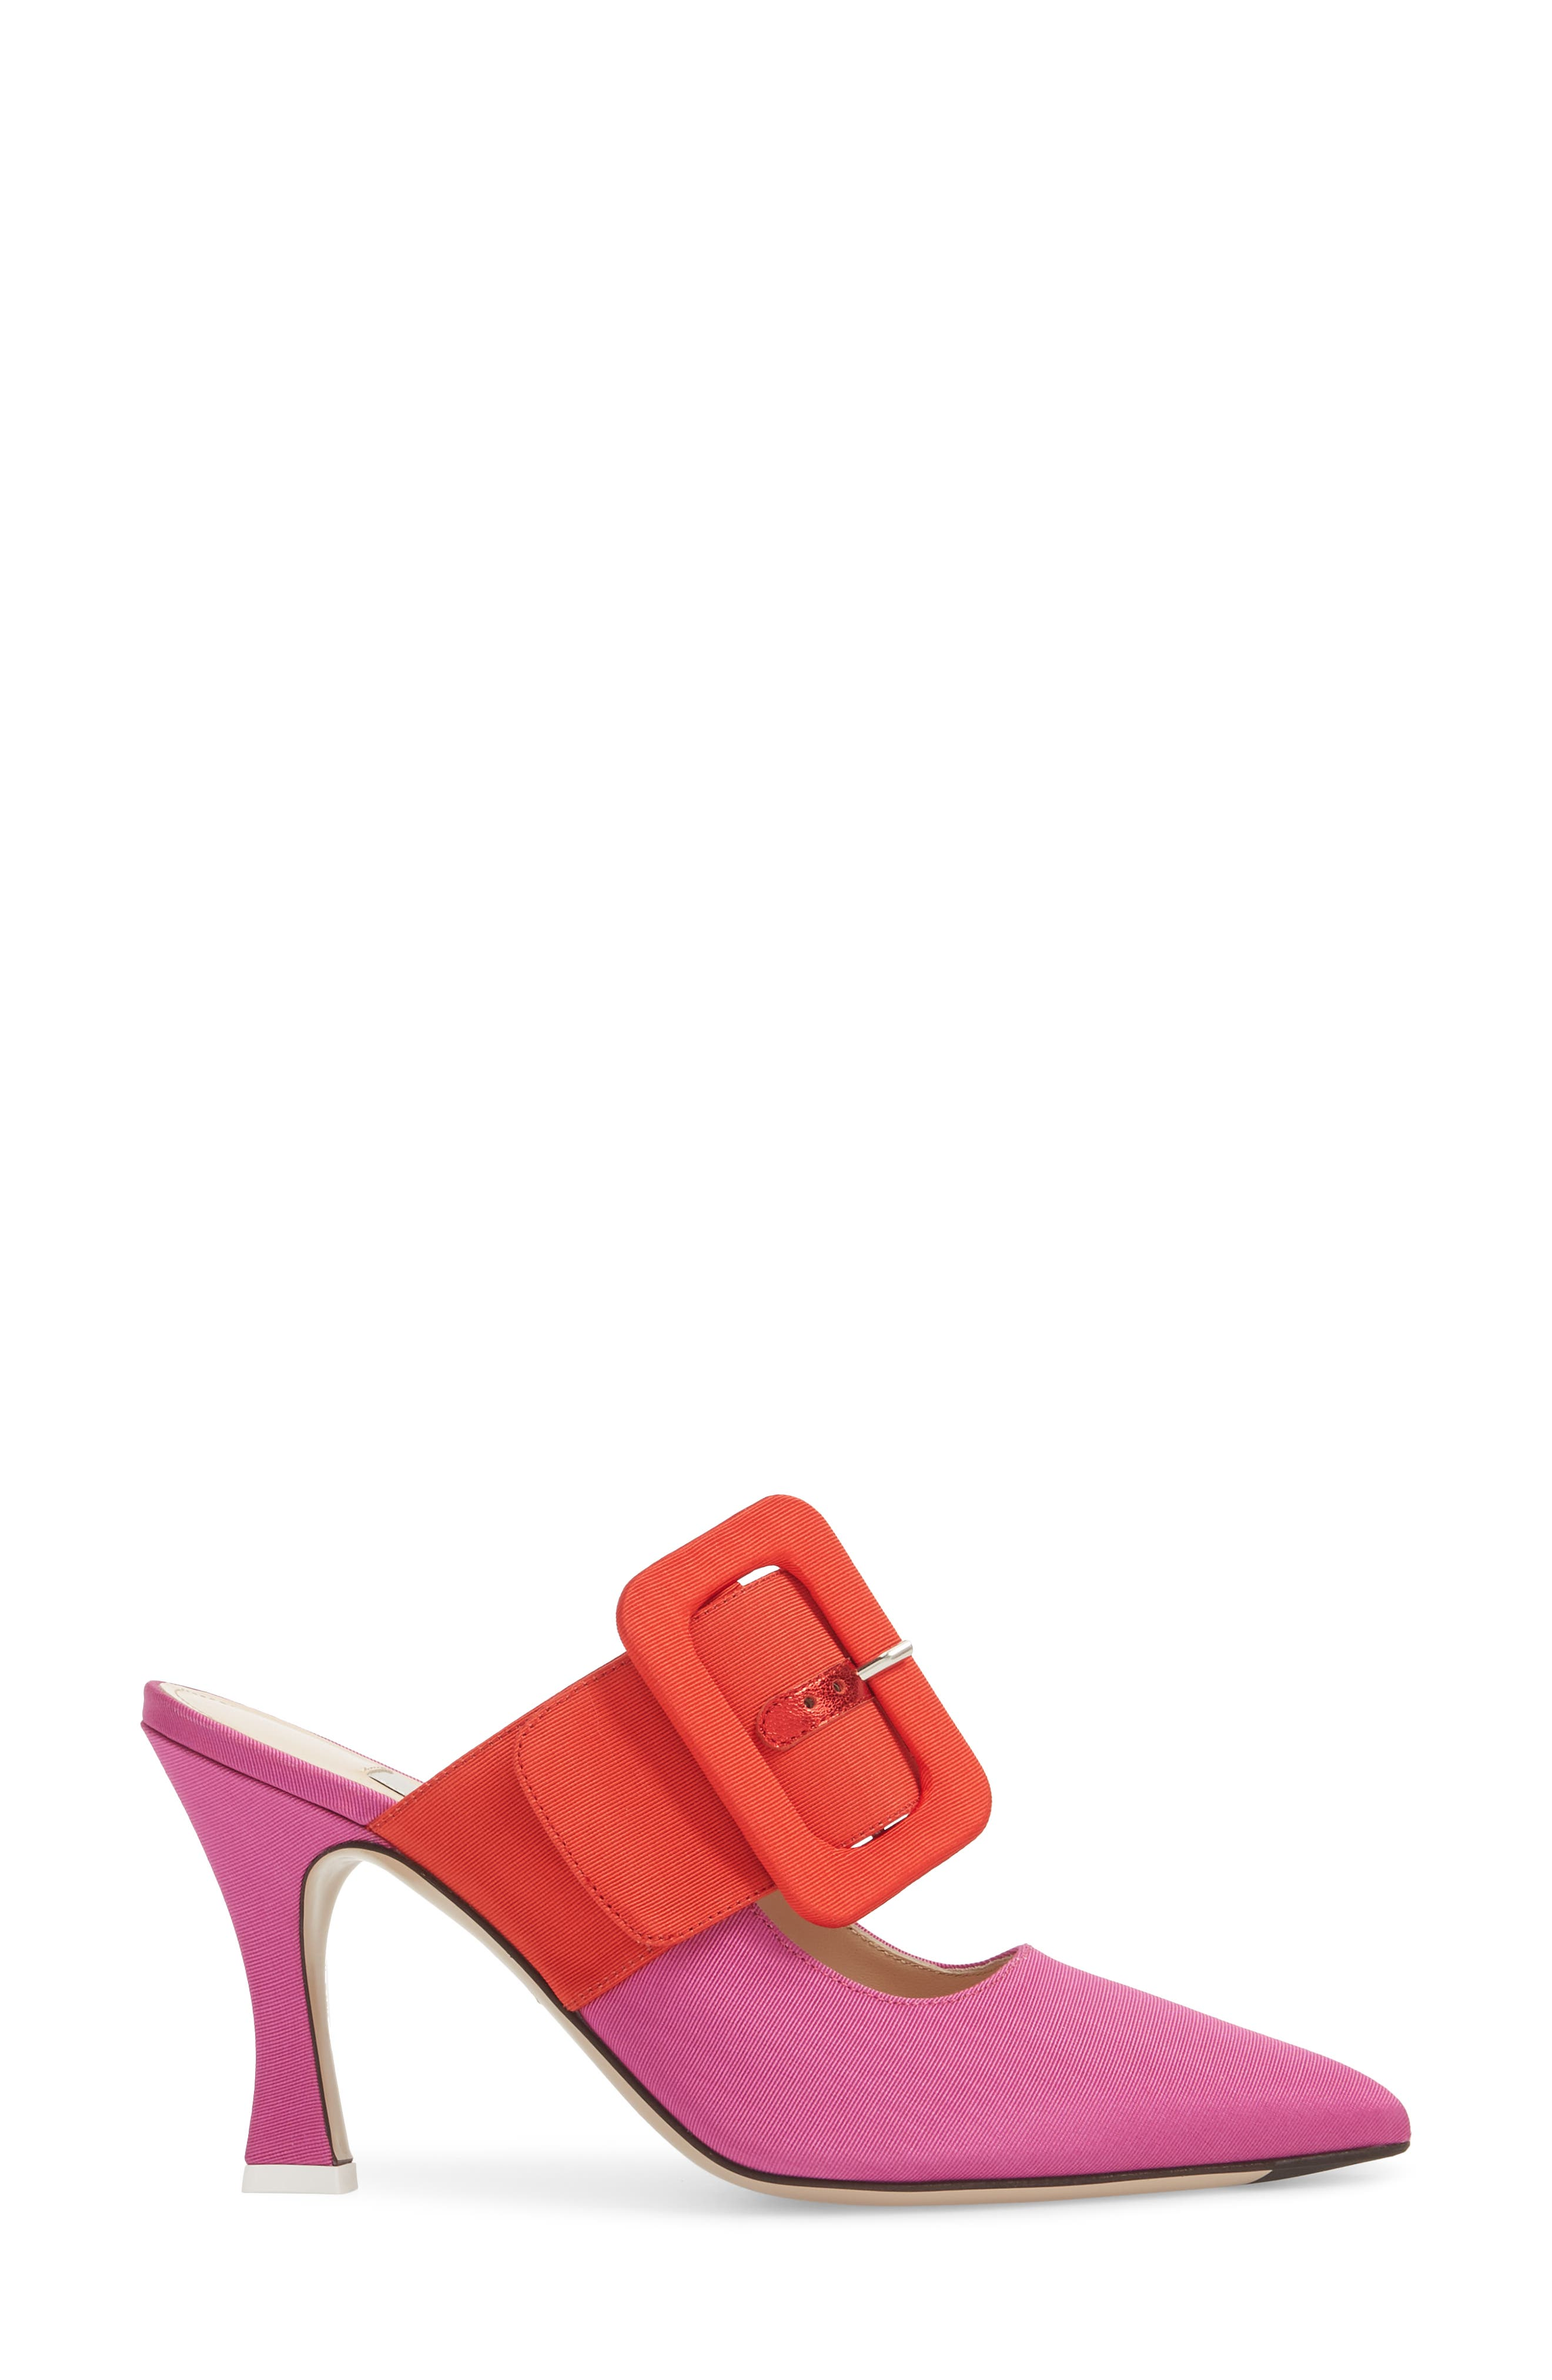 Chloé Buckle Mule,                             Alternate thumbnail 3, color,                             Pink/ Red